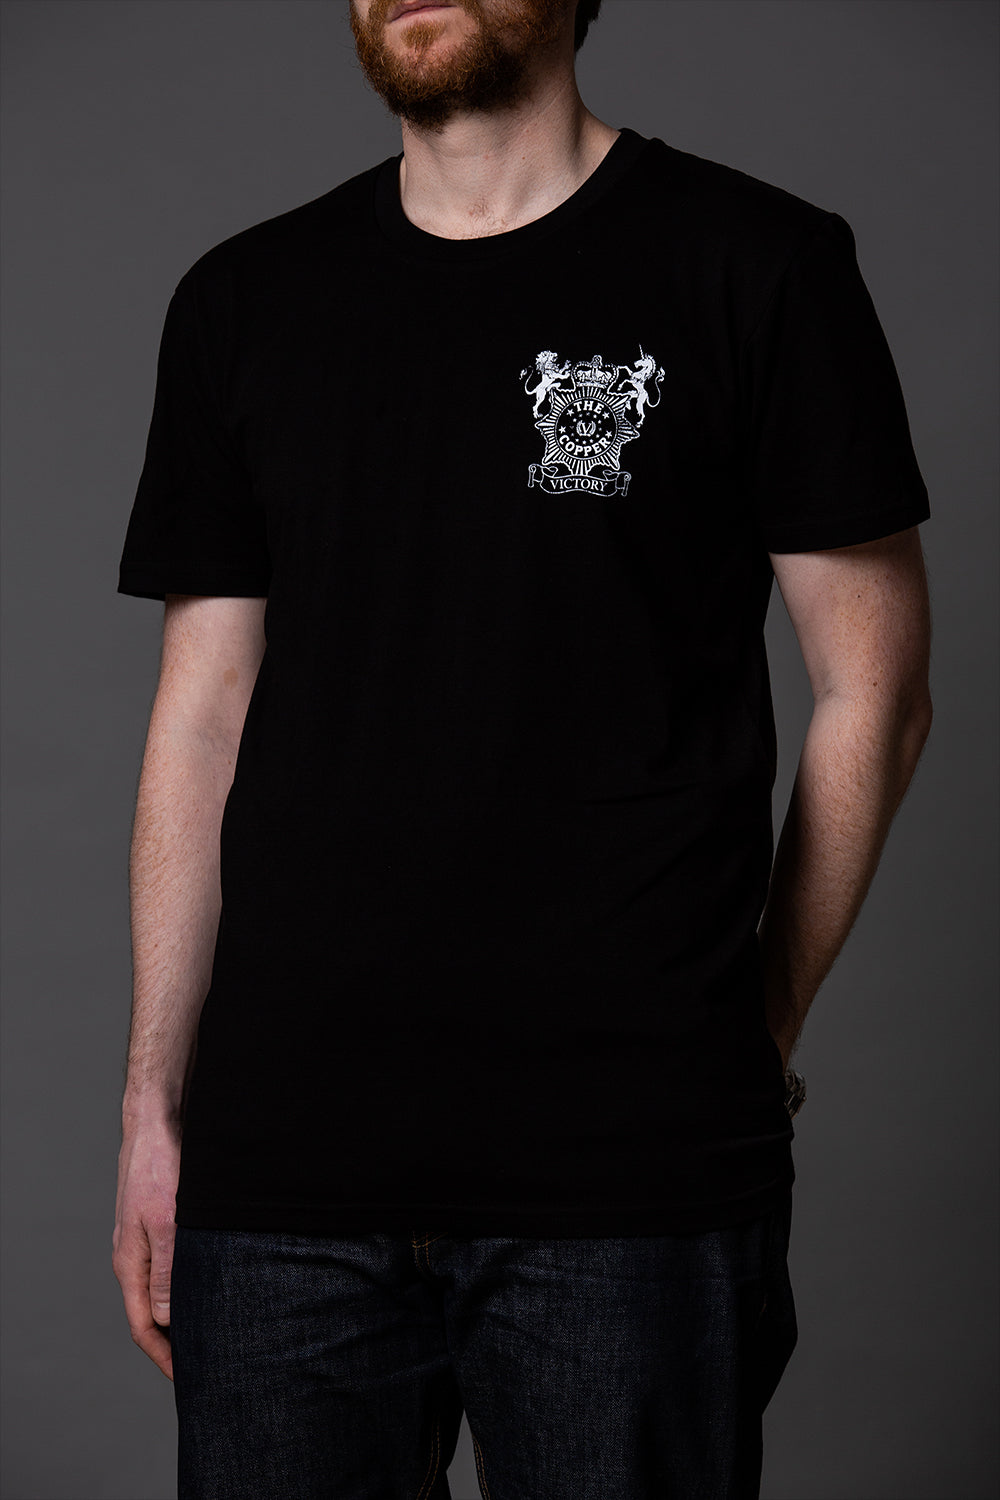 Official Victory The Copper Small Logo T-Shirt - Black with small white logo on front.